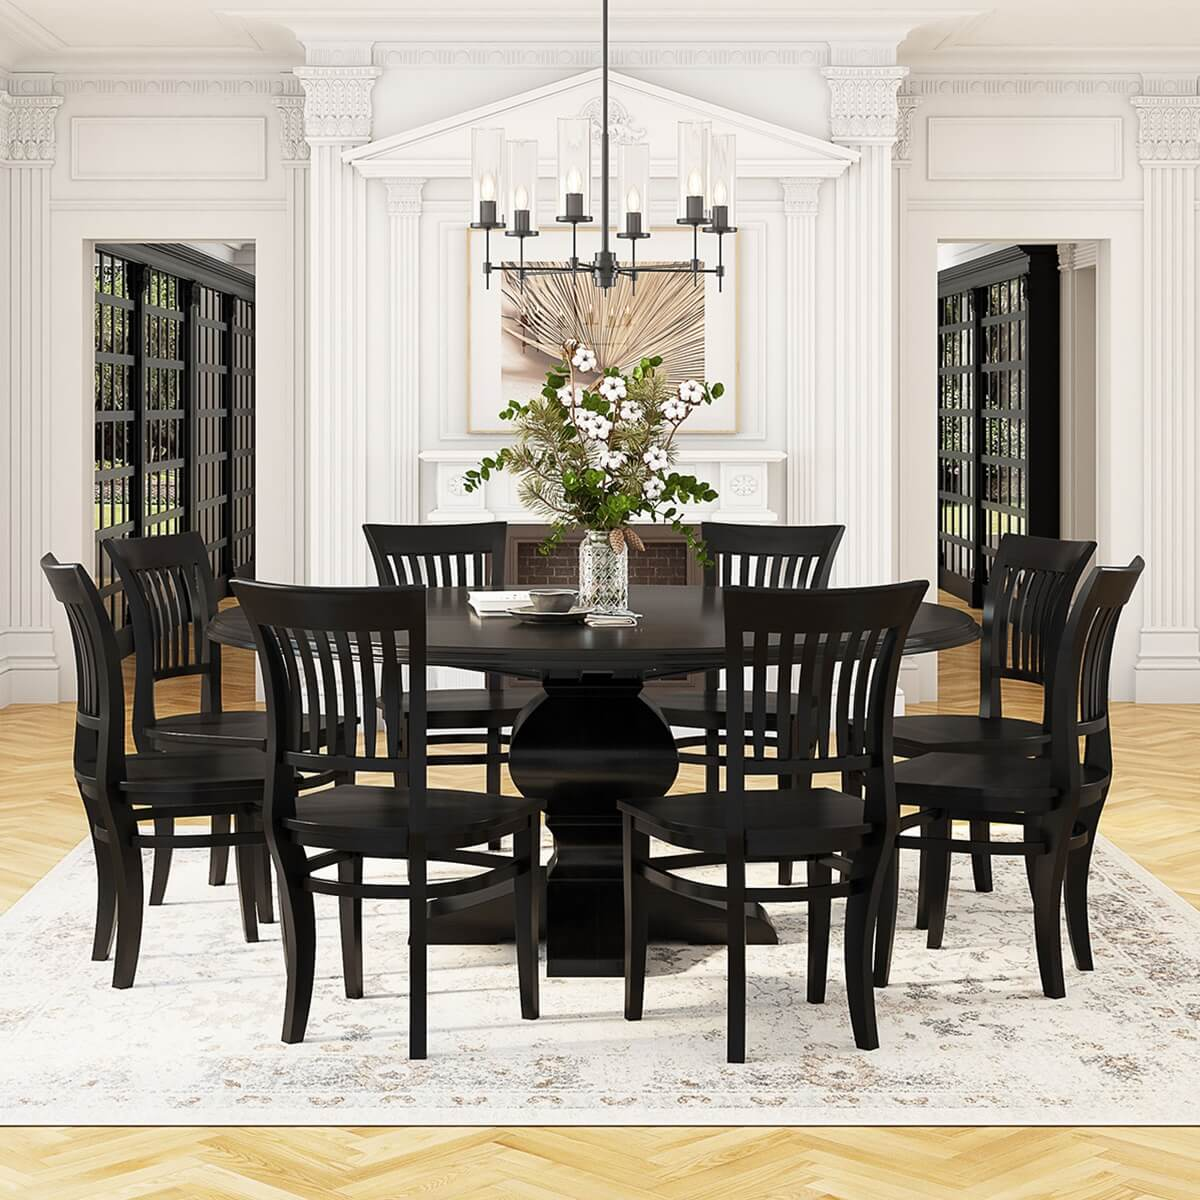 Sierra nevada large round rustic solid wood dining table for Solid wood dining table sets